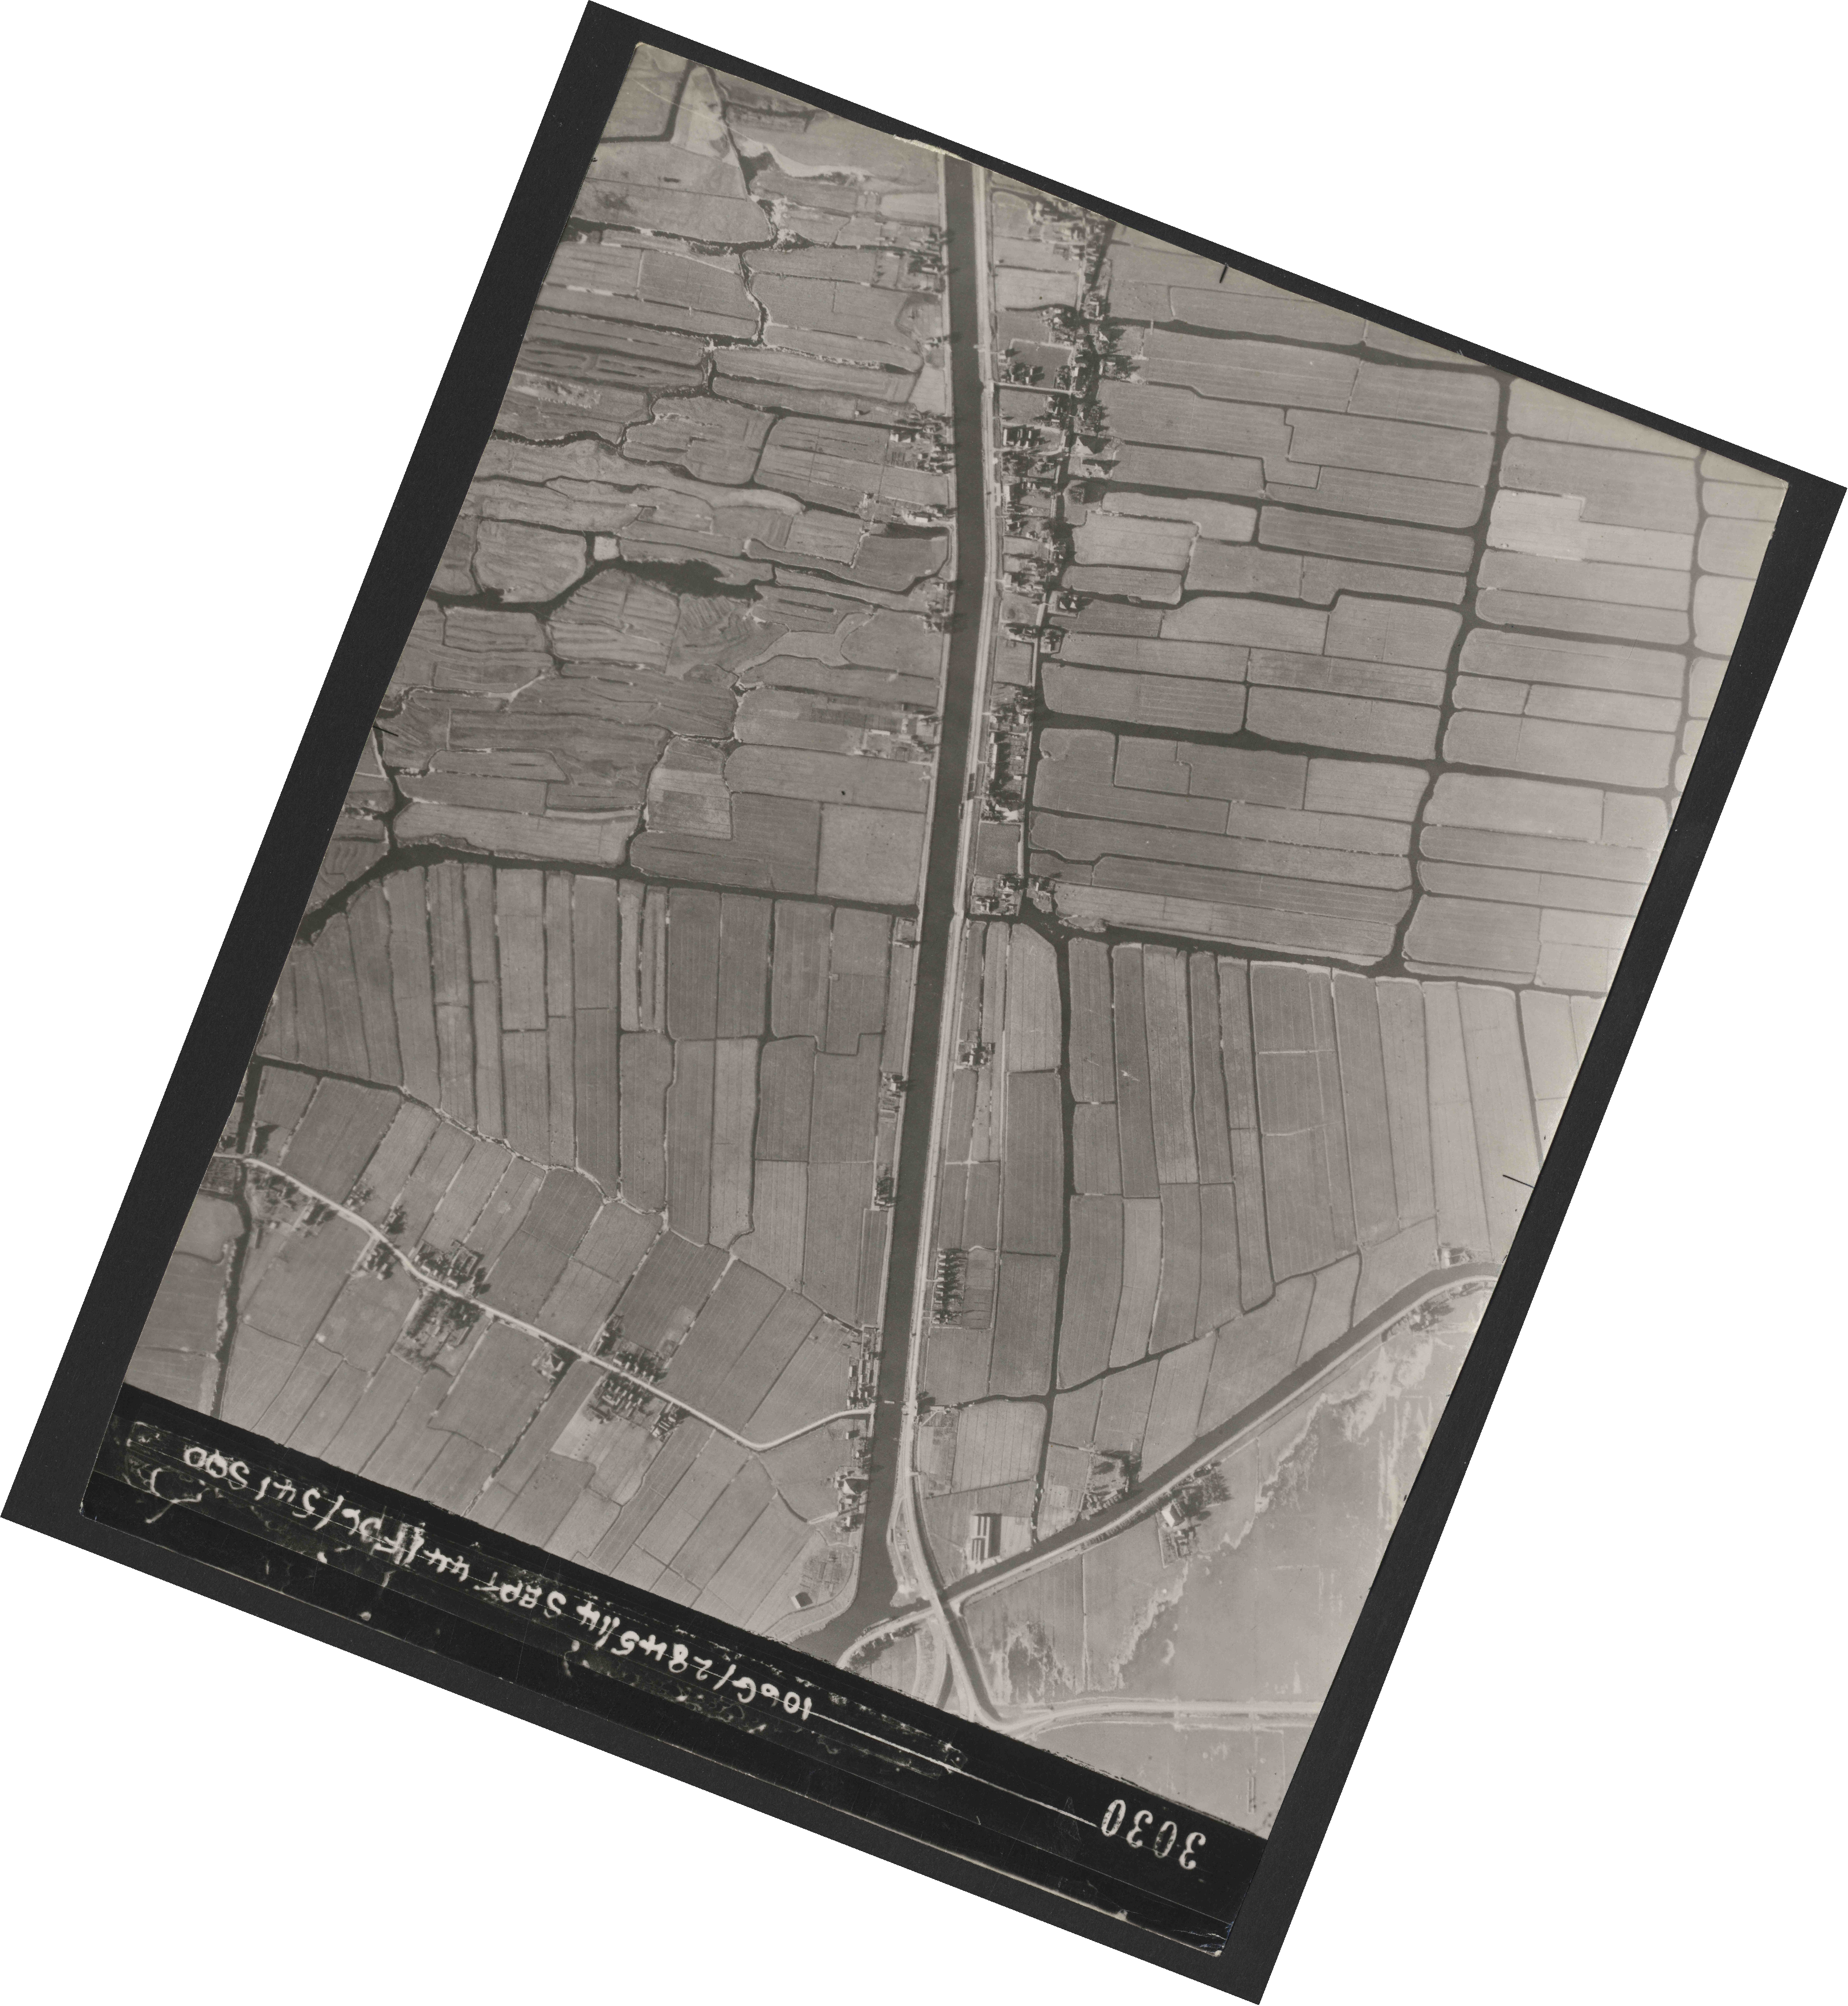 Collection RAF aerial photos 1940-1945 - flight 299, run 08, photo 3030